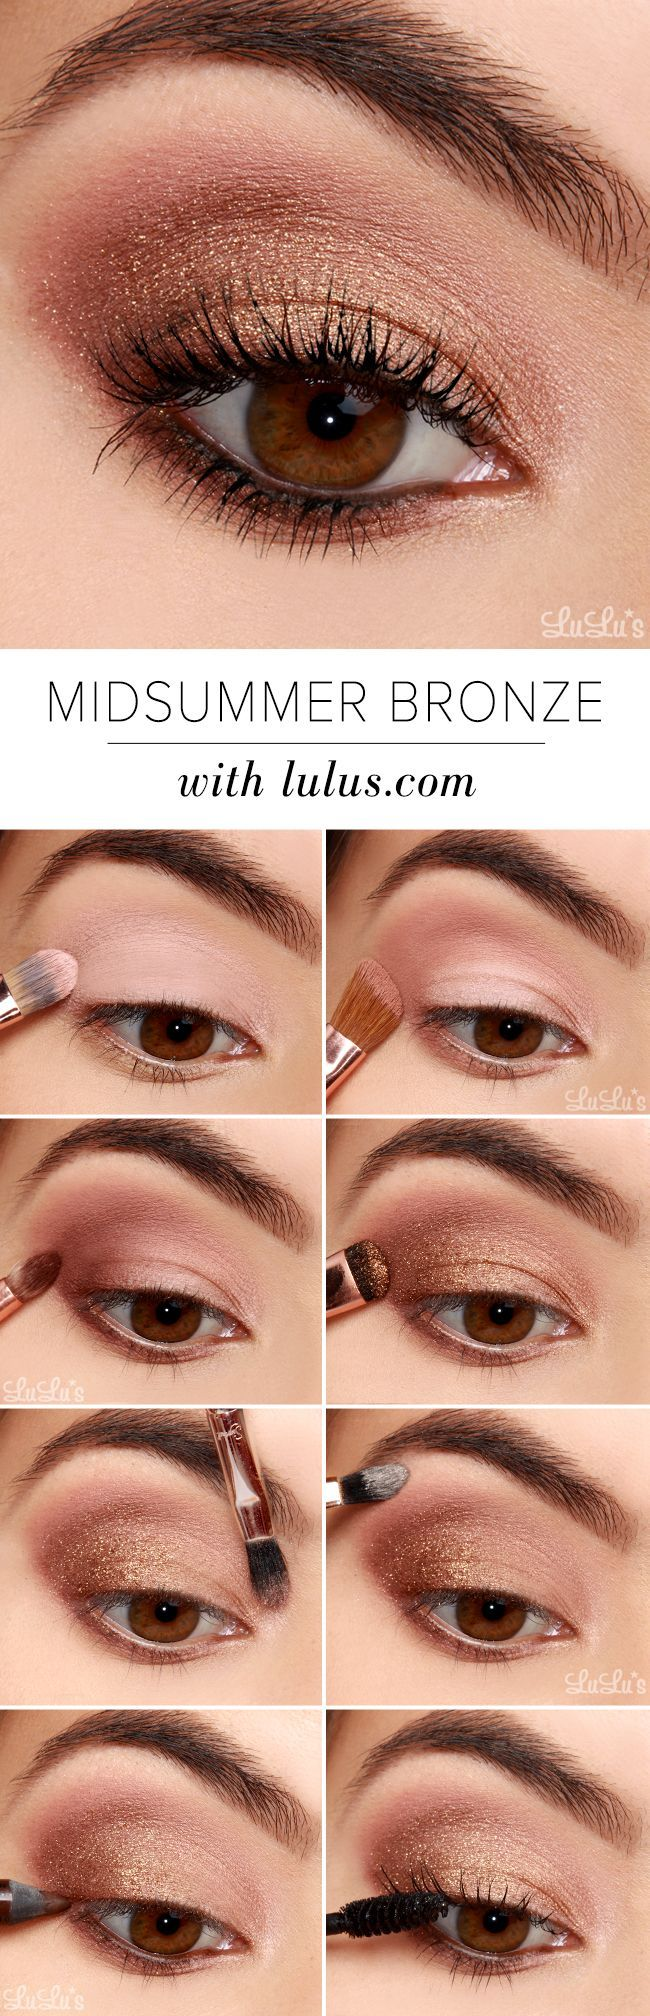 Just on time! When the summer is here, something for makeup in mid-summer